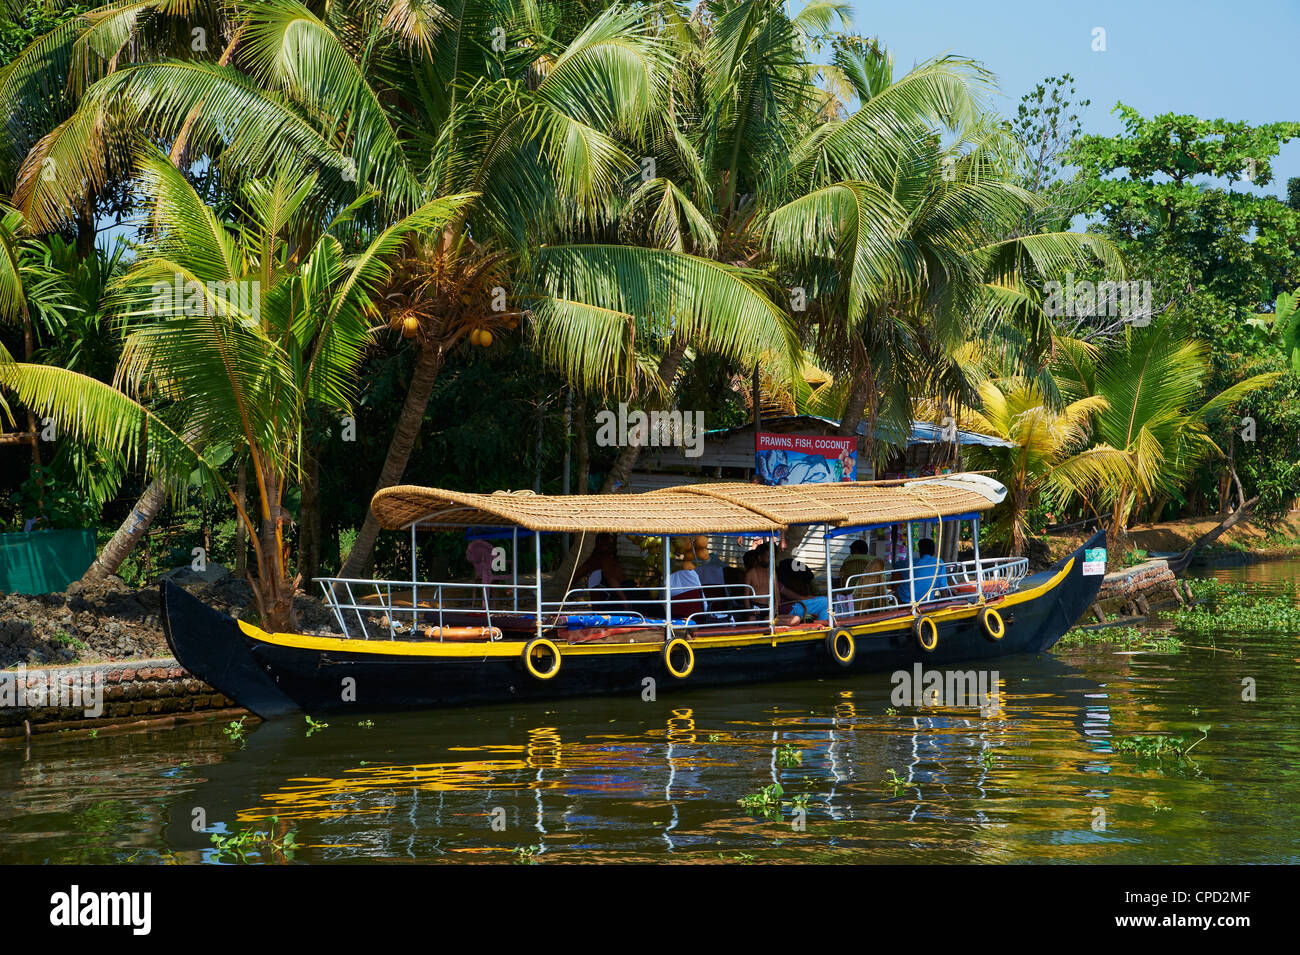 Boat for tourists on the Backwaters, Allepey, Kerala, India, Asia - Stock Image